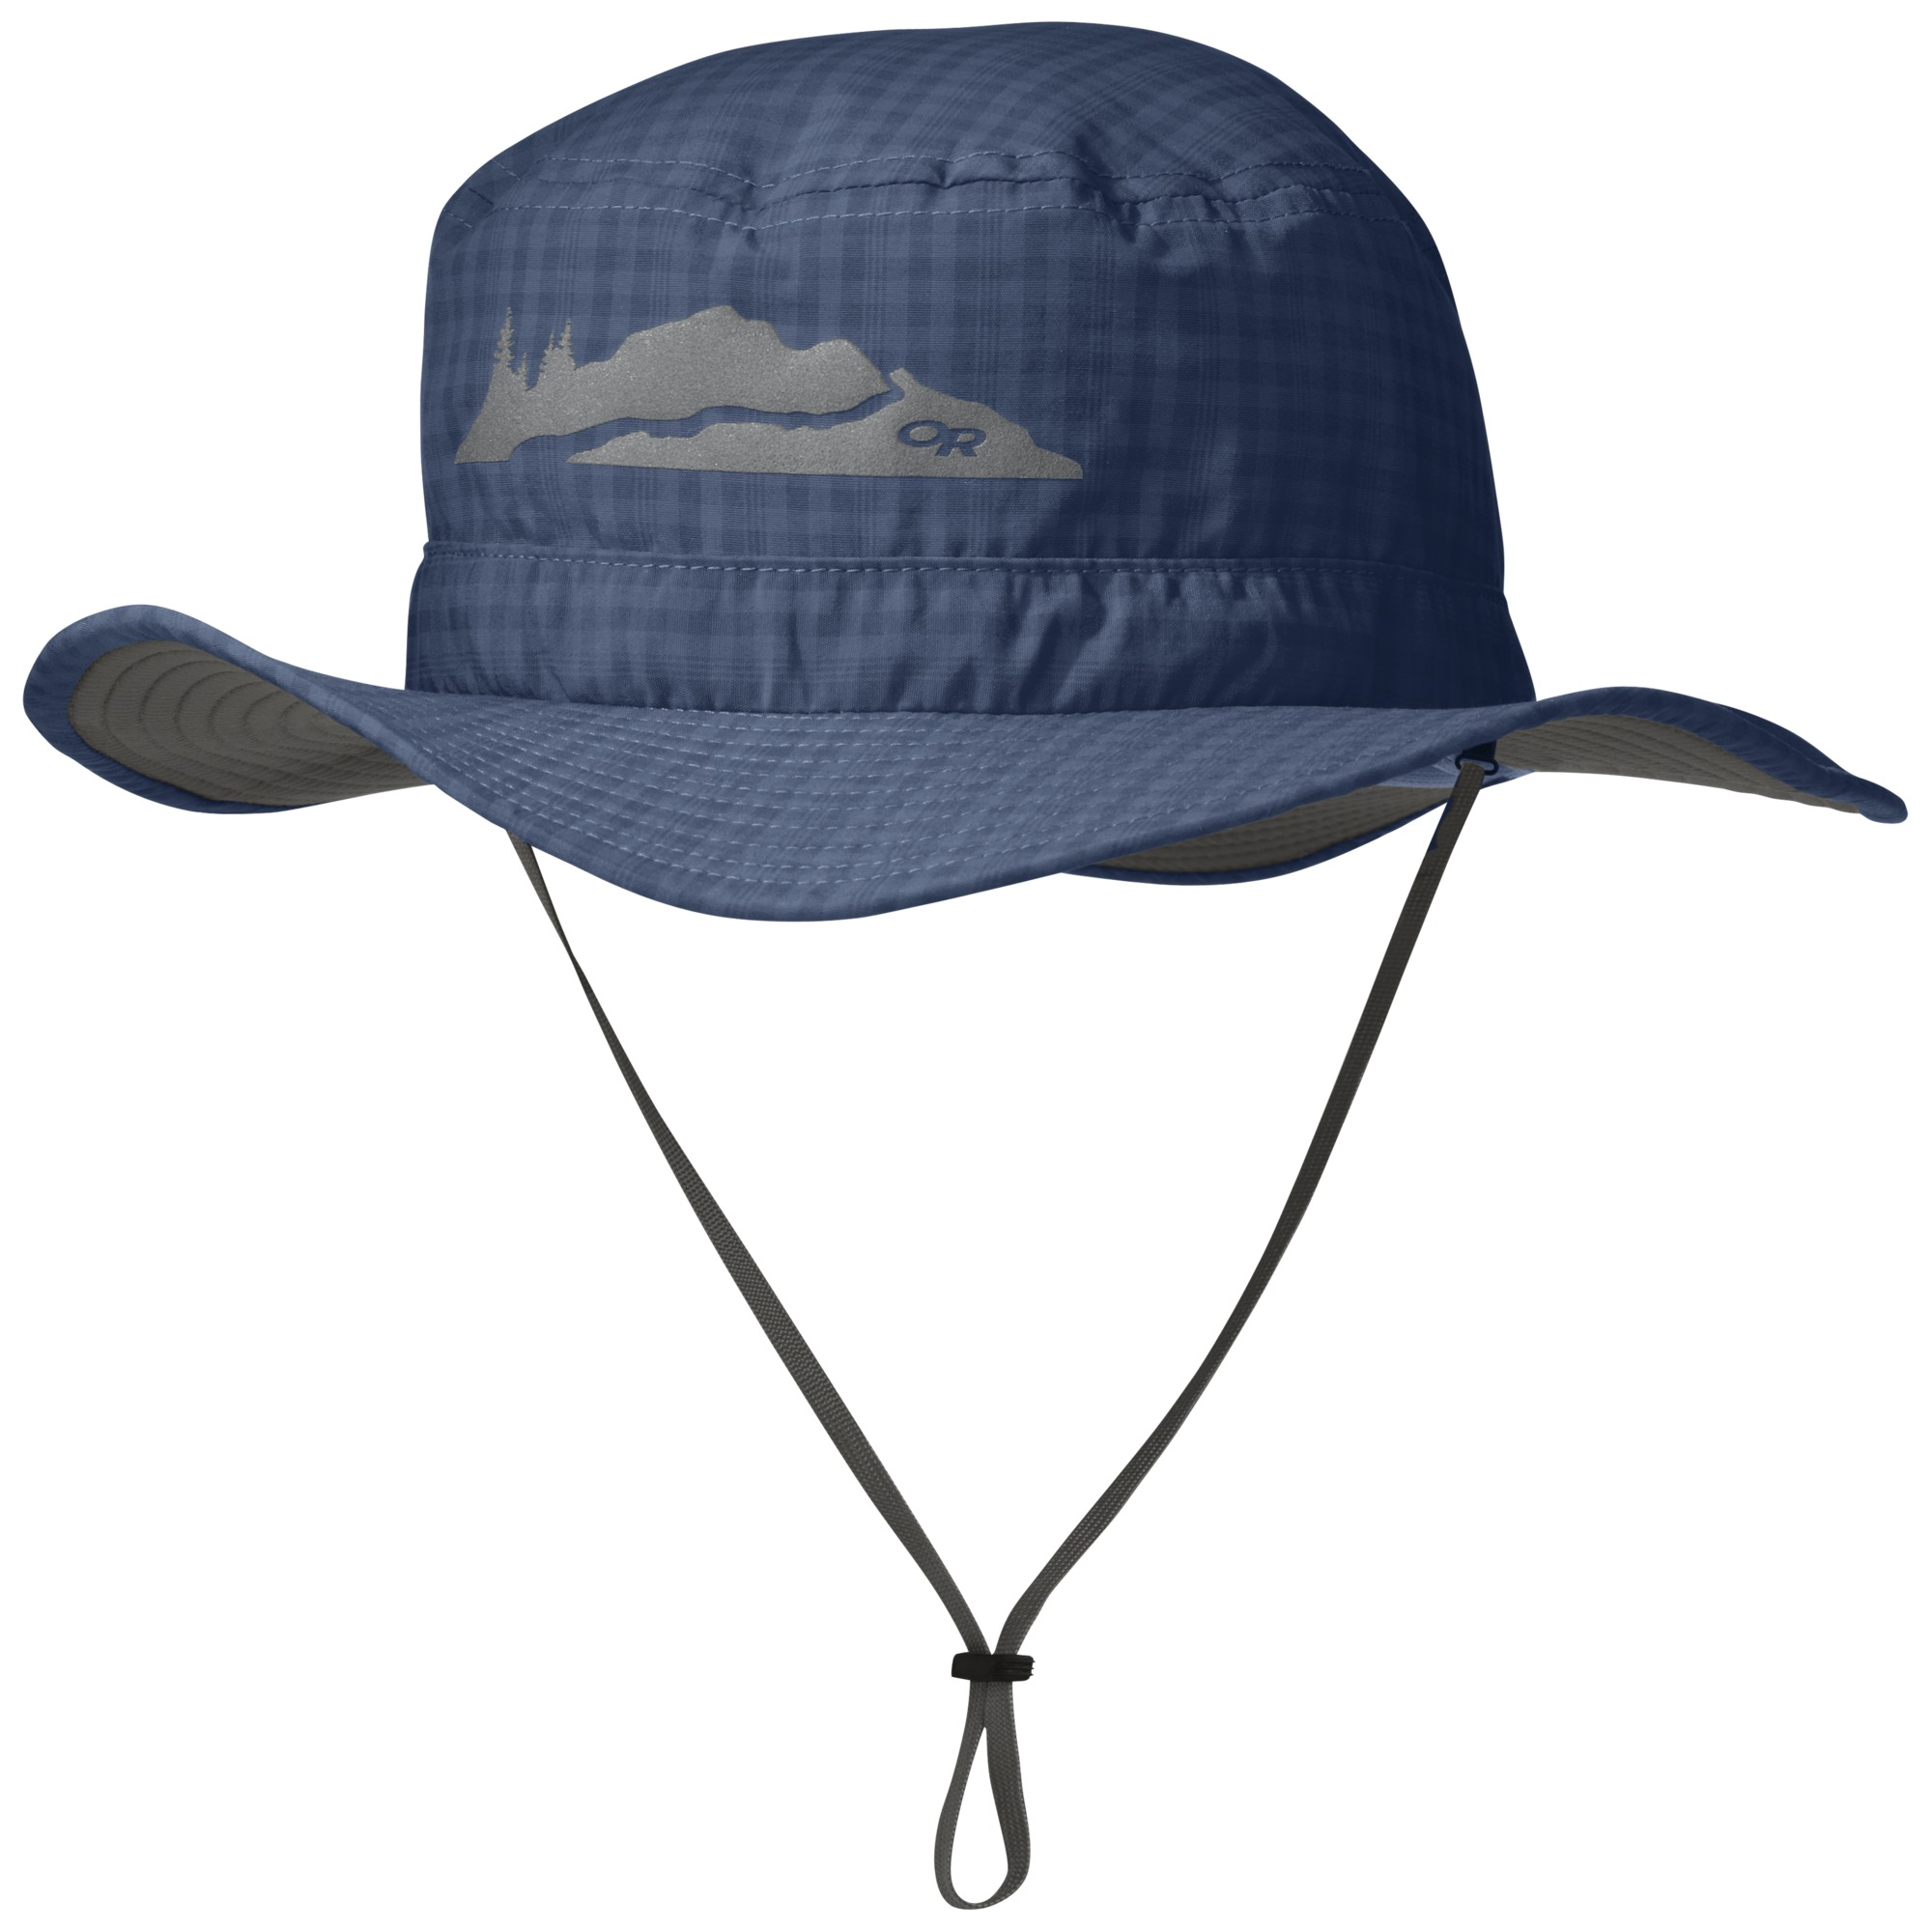 80a96b31 Kids' Helios Sun Hat - dusk | Outdoor Research